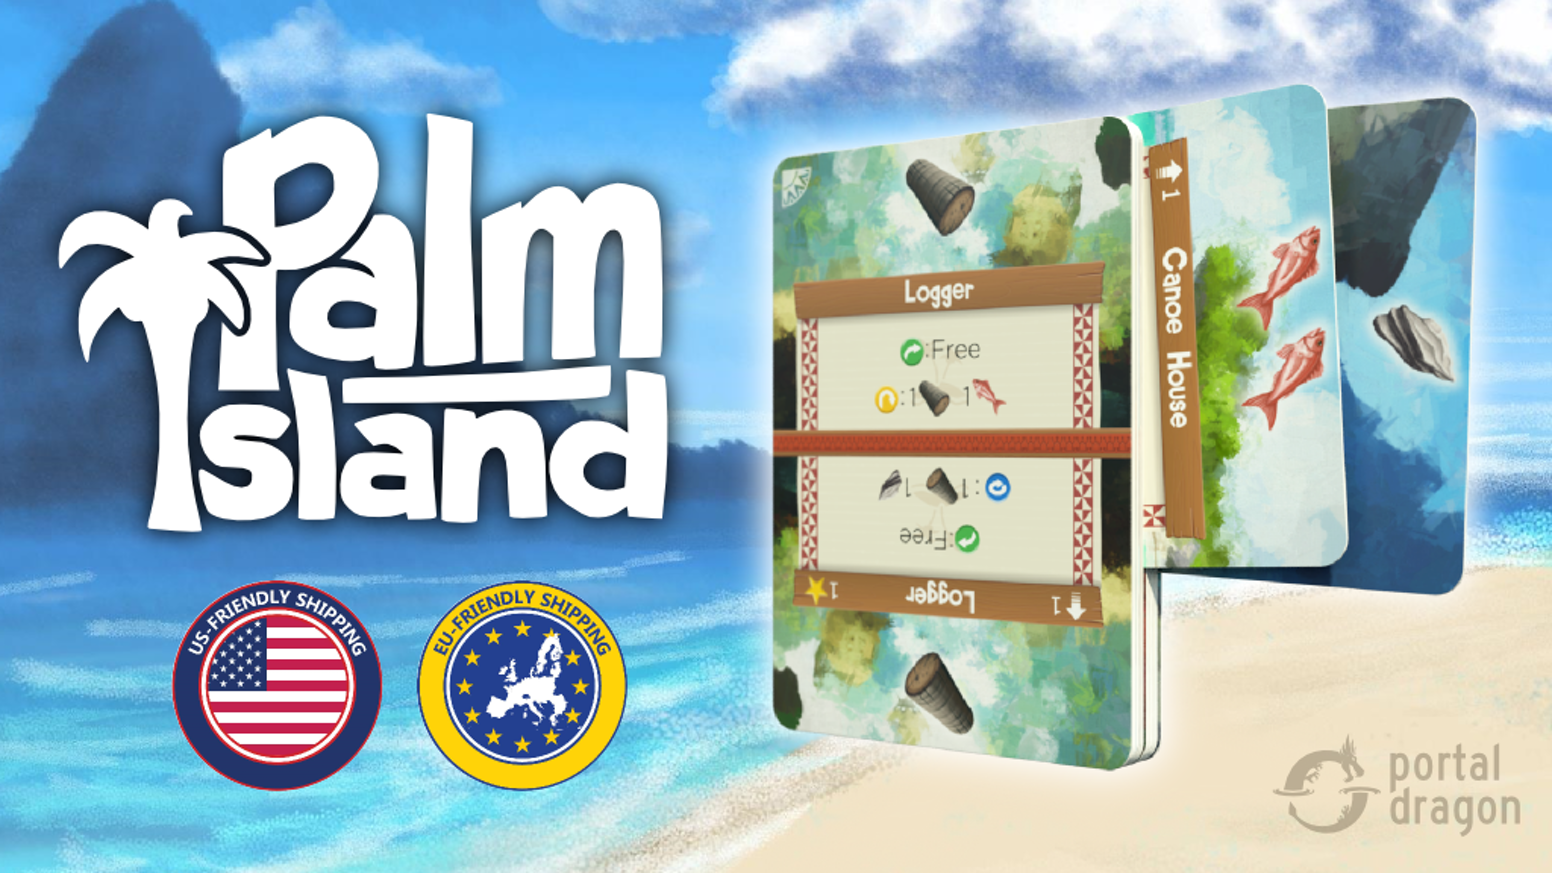 Take your island with you. Play anywhere with this portable deck transformer game.